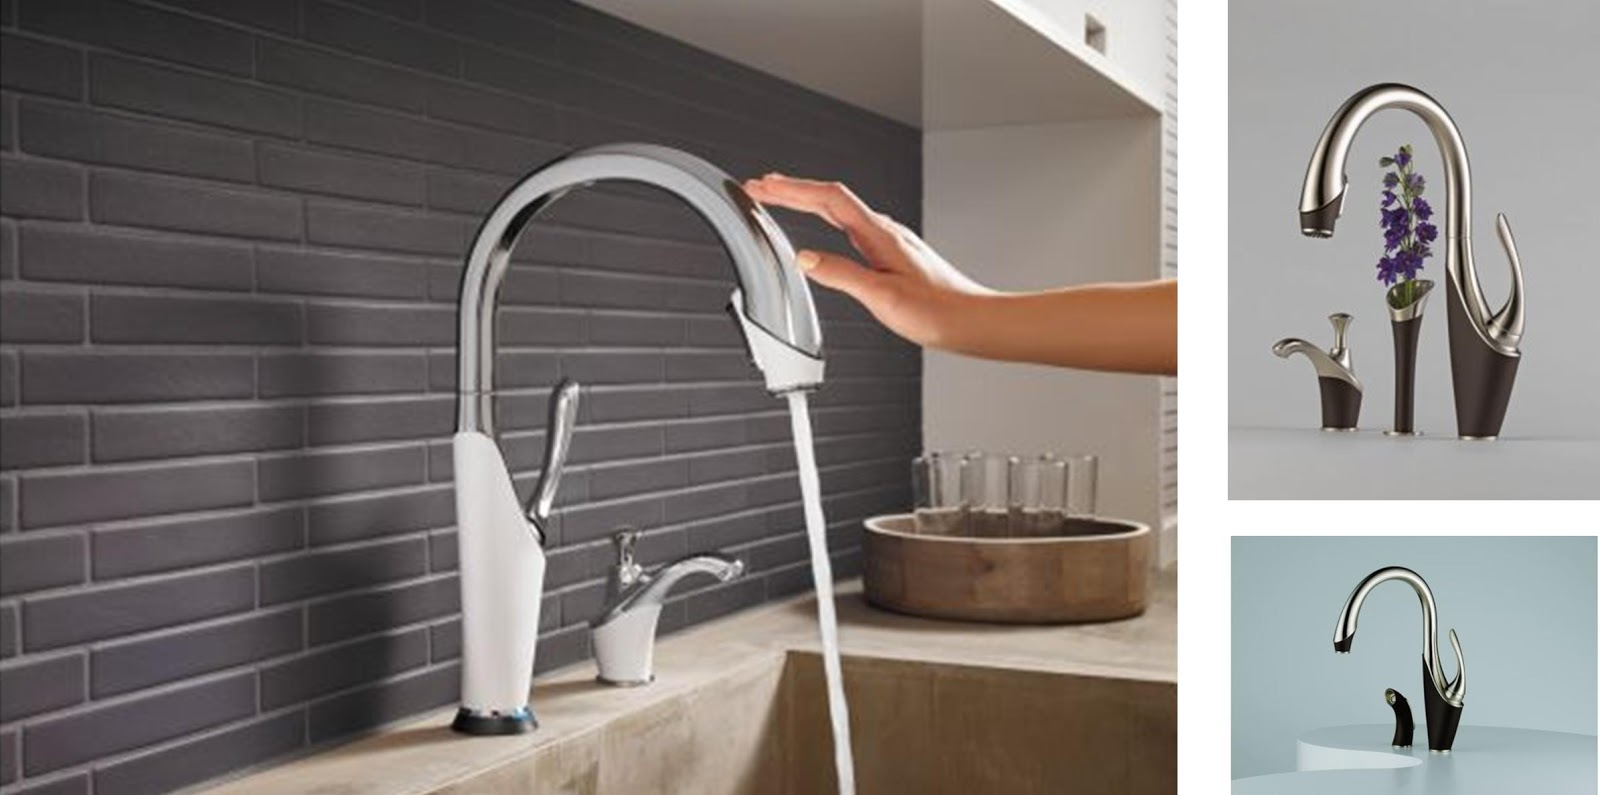 Brizo Kitchen Faucets | Brizo Bathroom Faucets | Touch Activated Kitchen Faucets